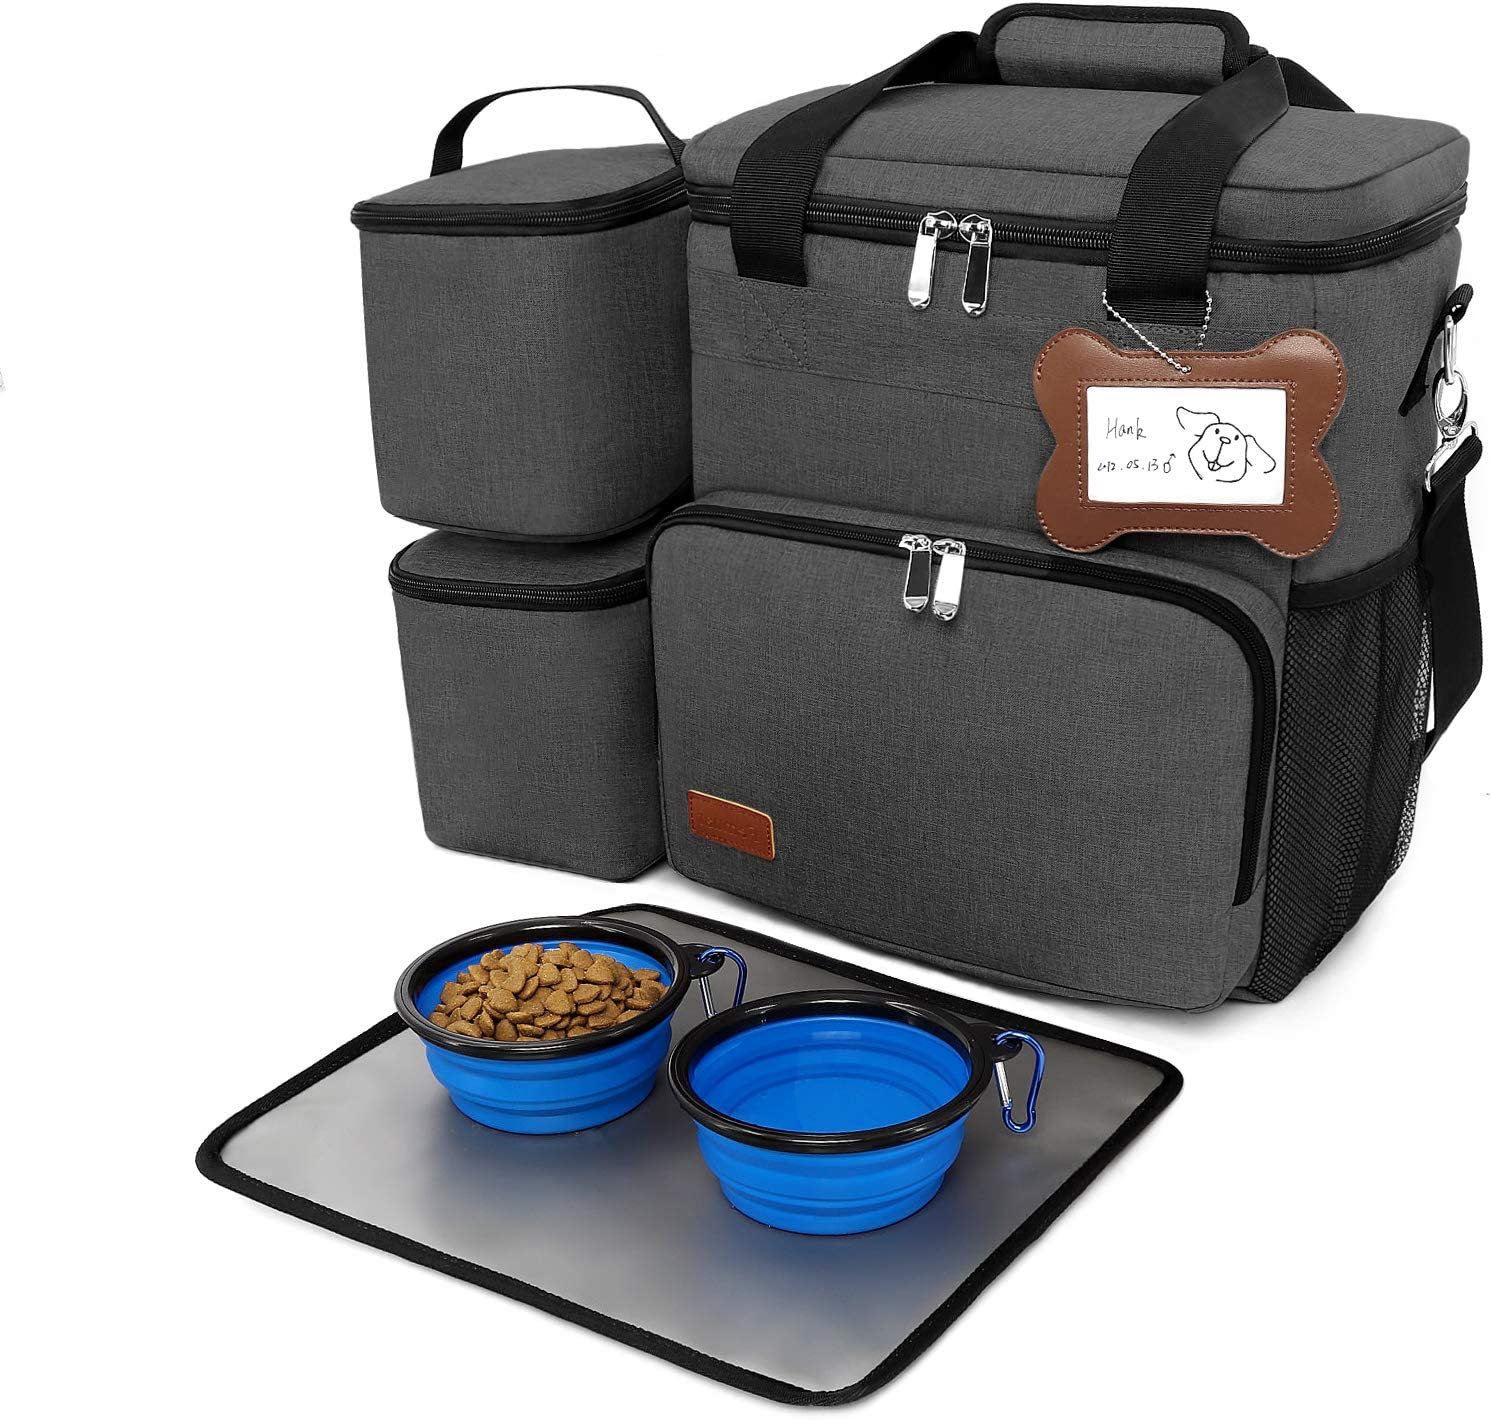 Femuar Dog Travel Bag - Airline Approved Dog or Cat Accessories - Weekend Pet Travel Gear Bag for Hiking Camping Trip - Multifunction Pockets, 2X Food Container Bags & 2X Collapsible Travel Dog Bowls